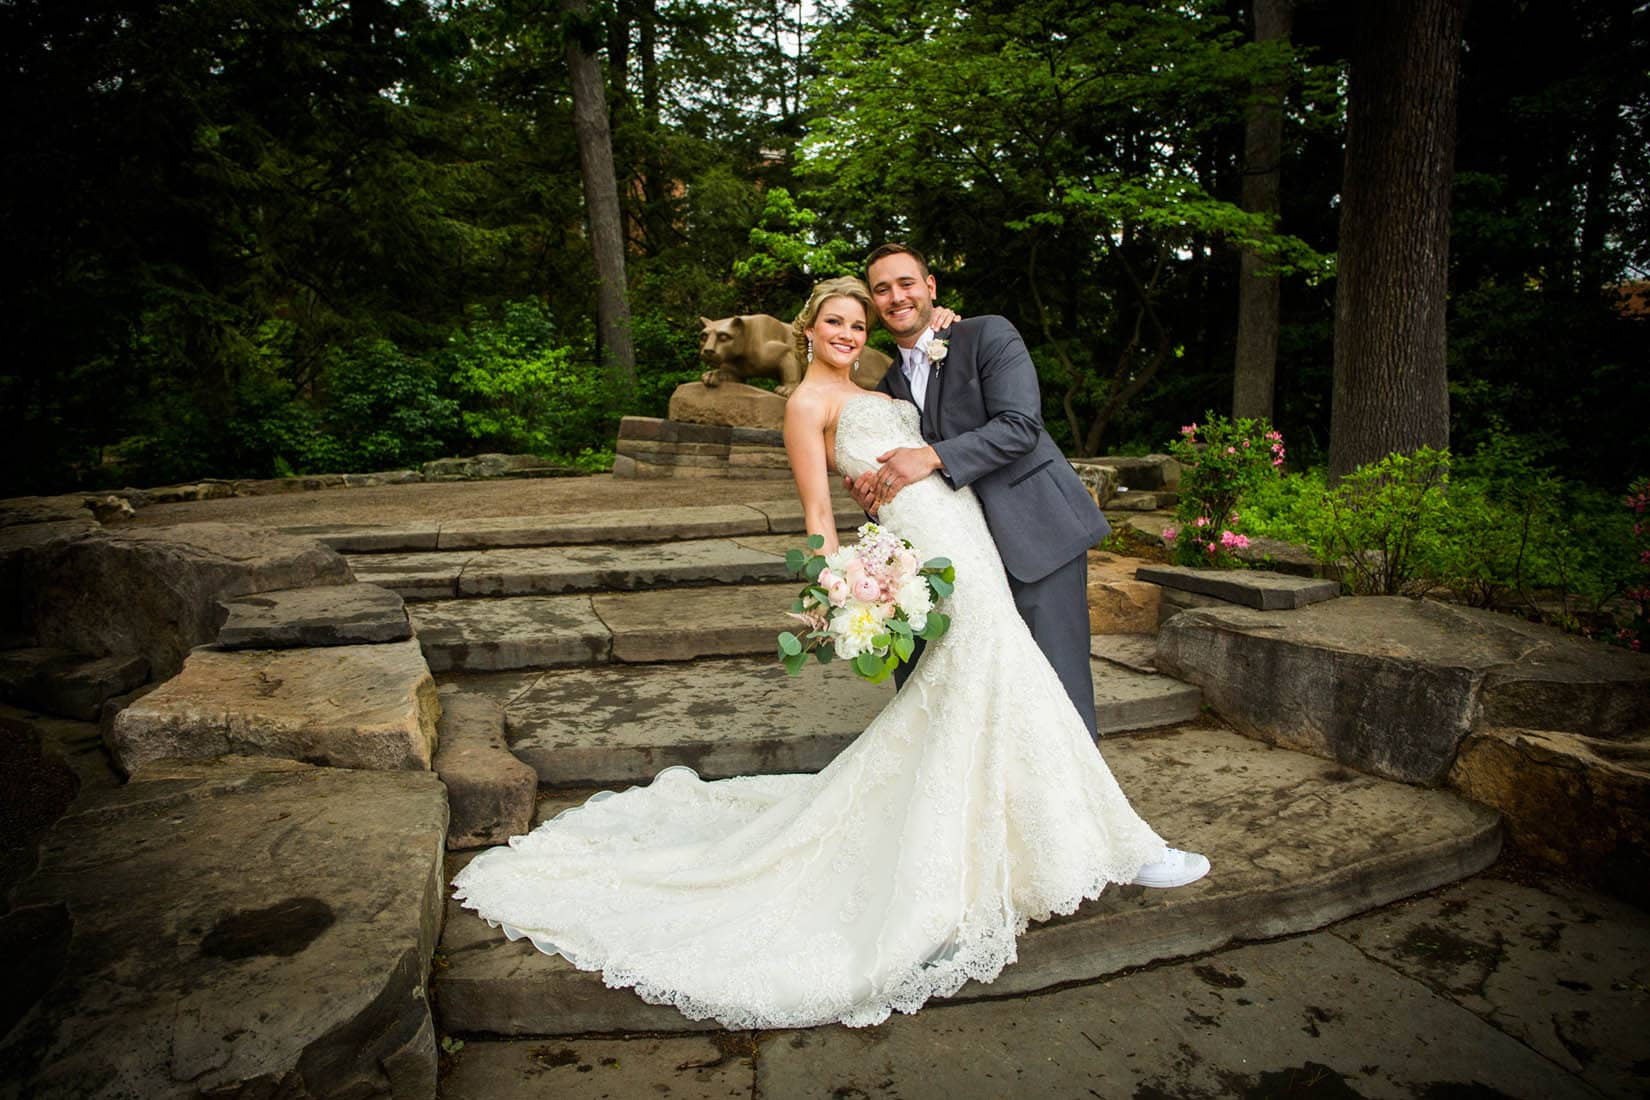 Nittany Lion Shrine, Penn State Wedding, State College, PA – Bob Lambert Photography